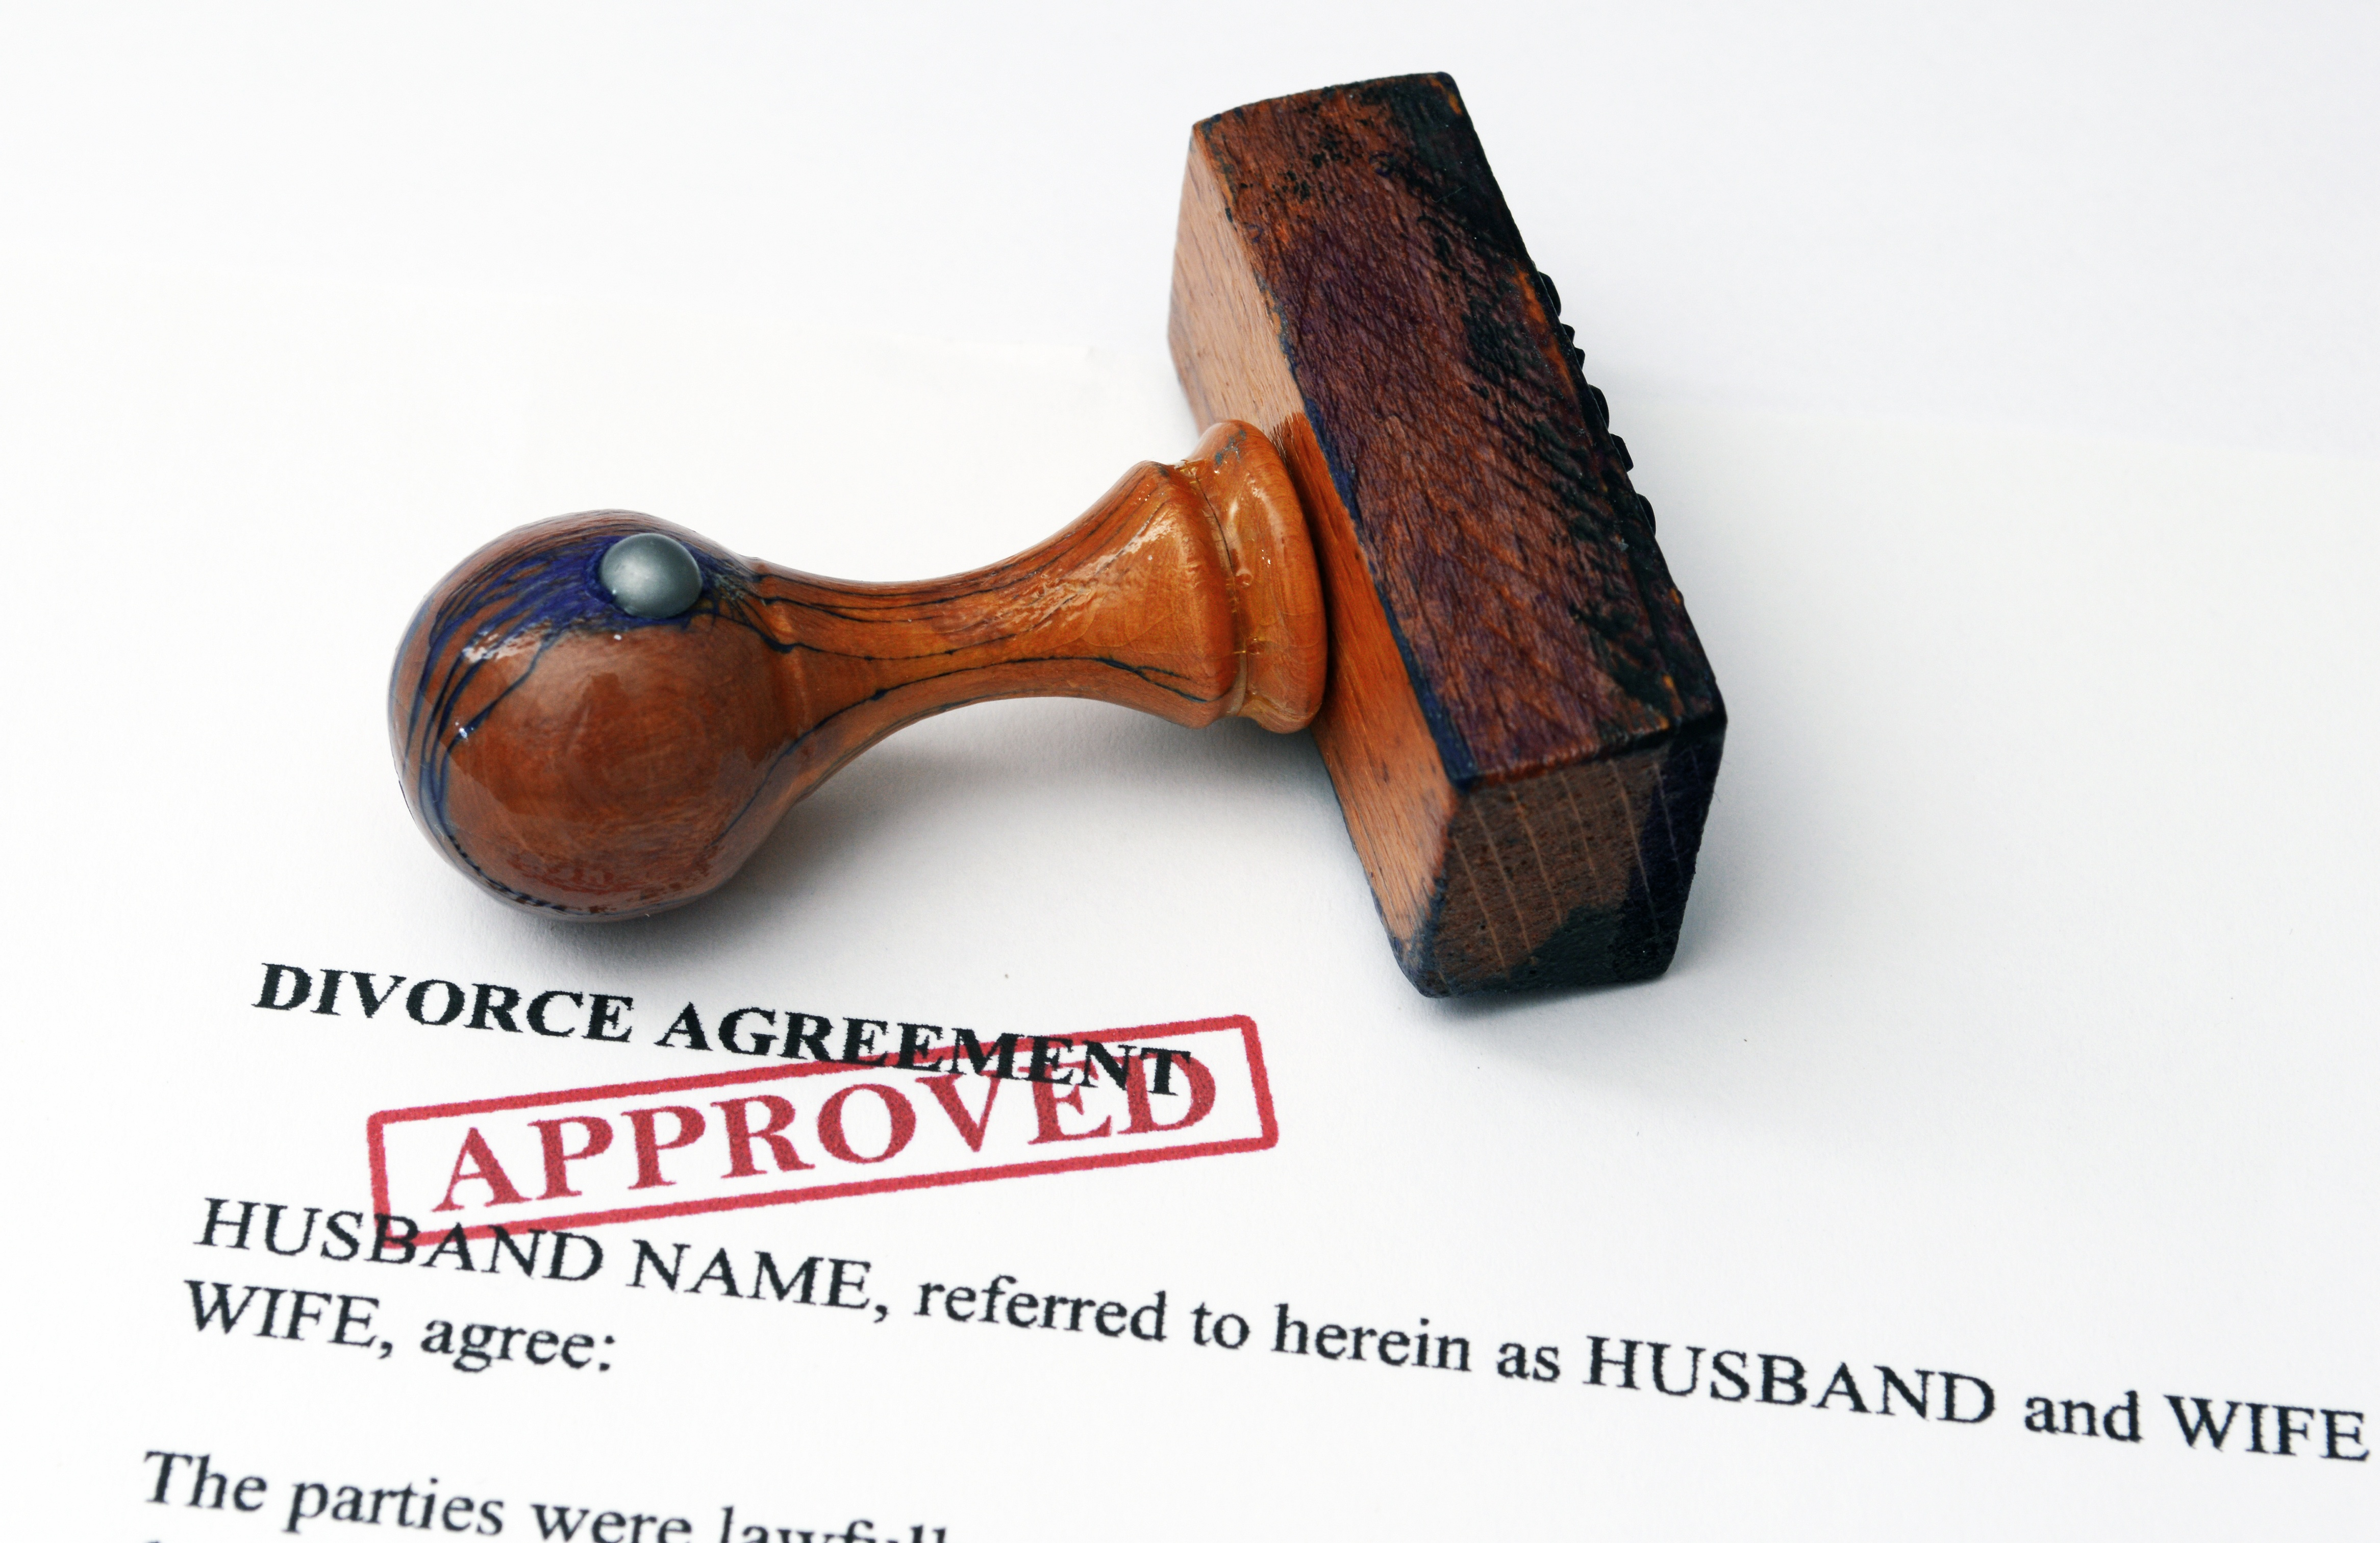 Divorce lawyer archives huerta law firm an approved divorce agreement solutioingenieria Images